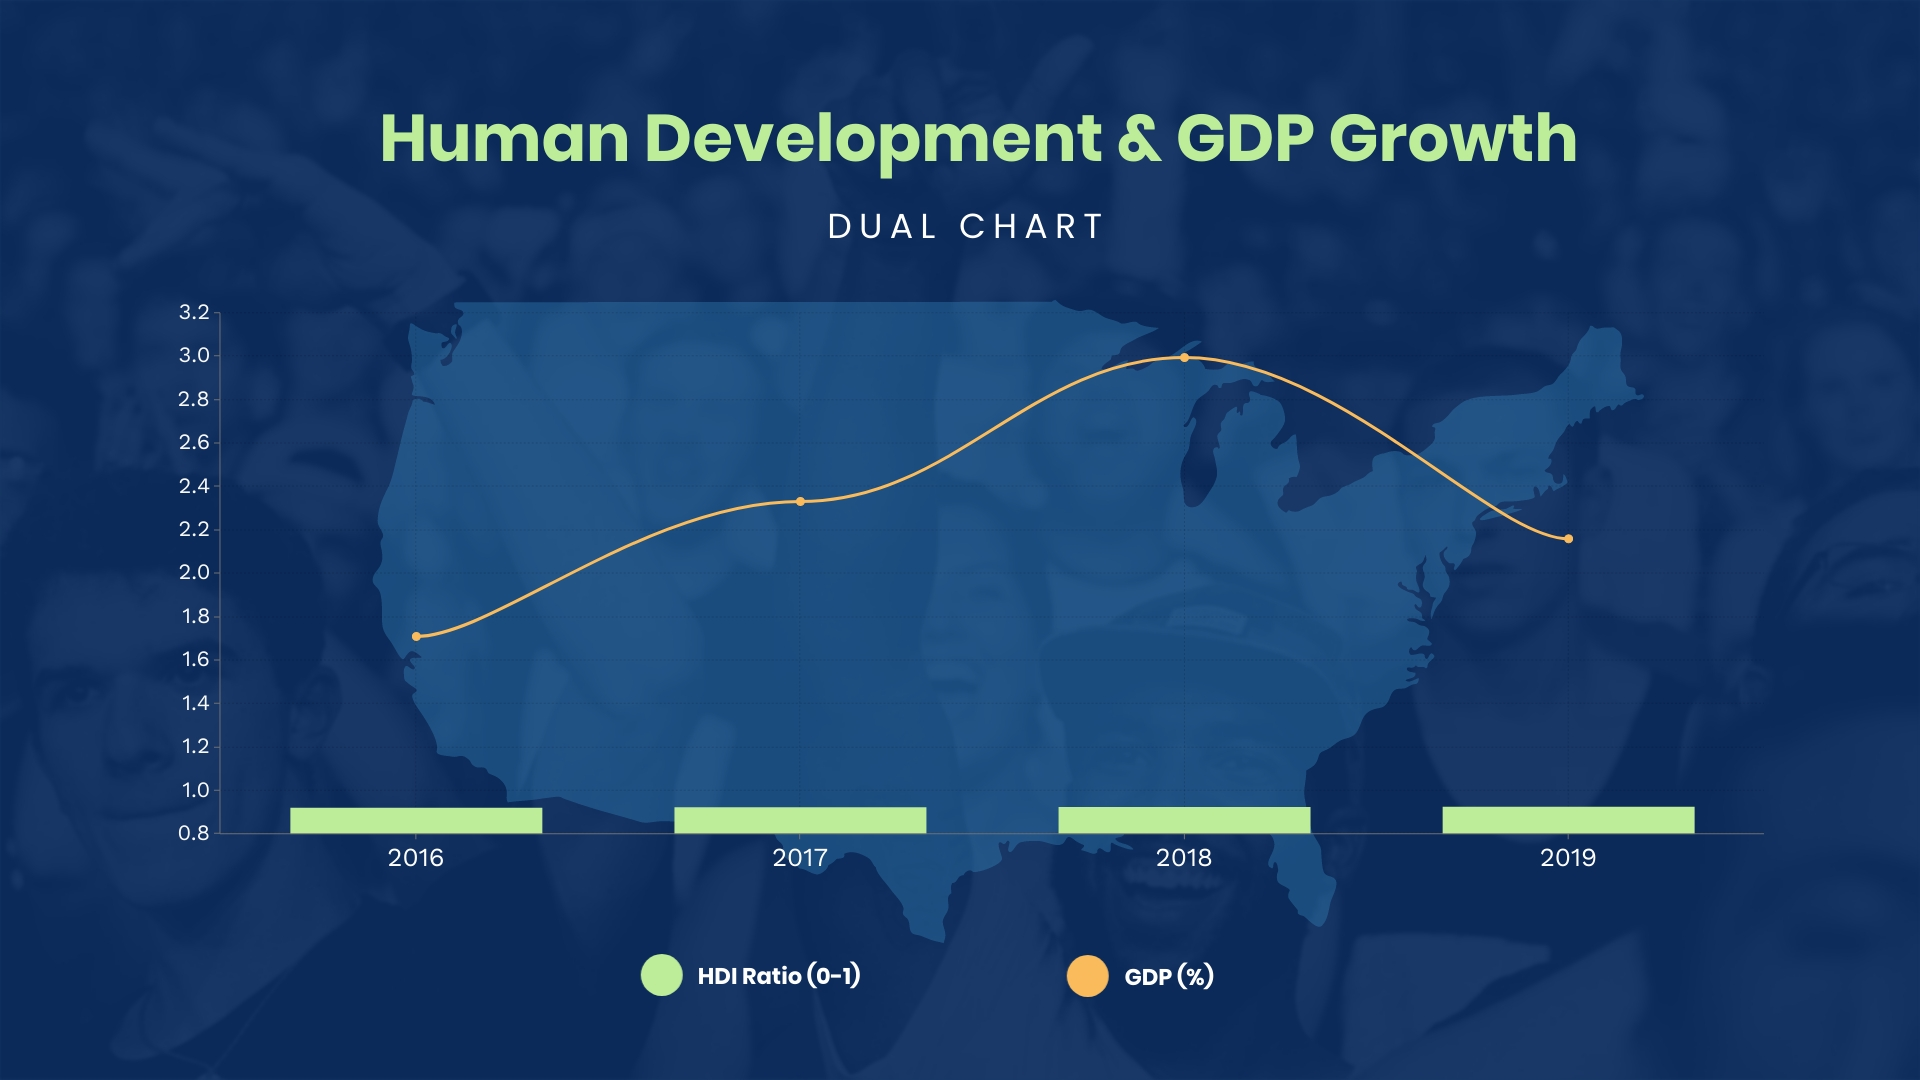 Human Development and GDP Growth Dual Chart Template